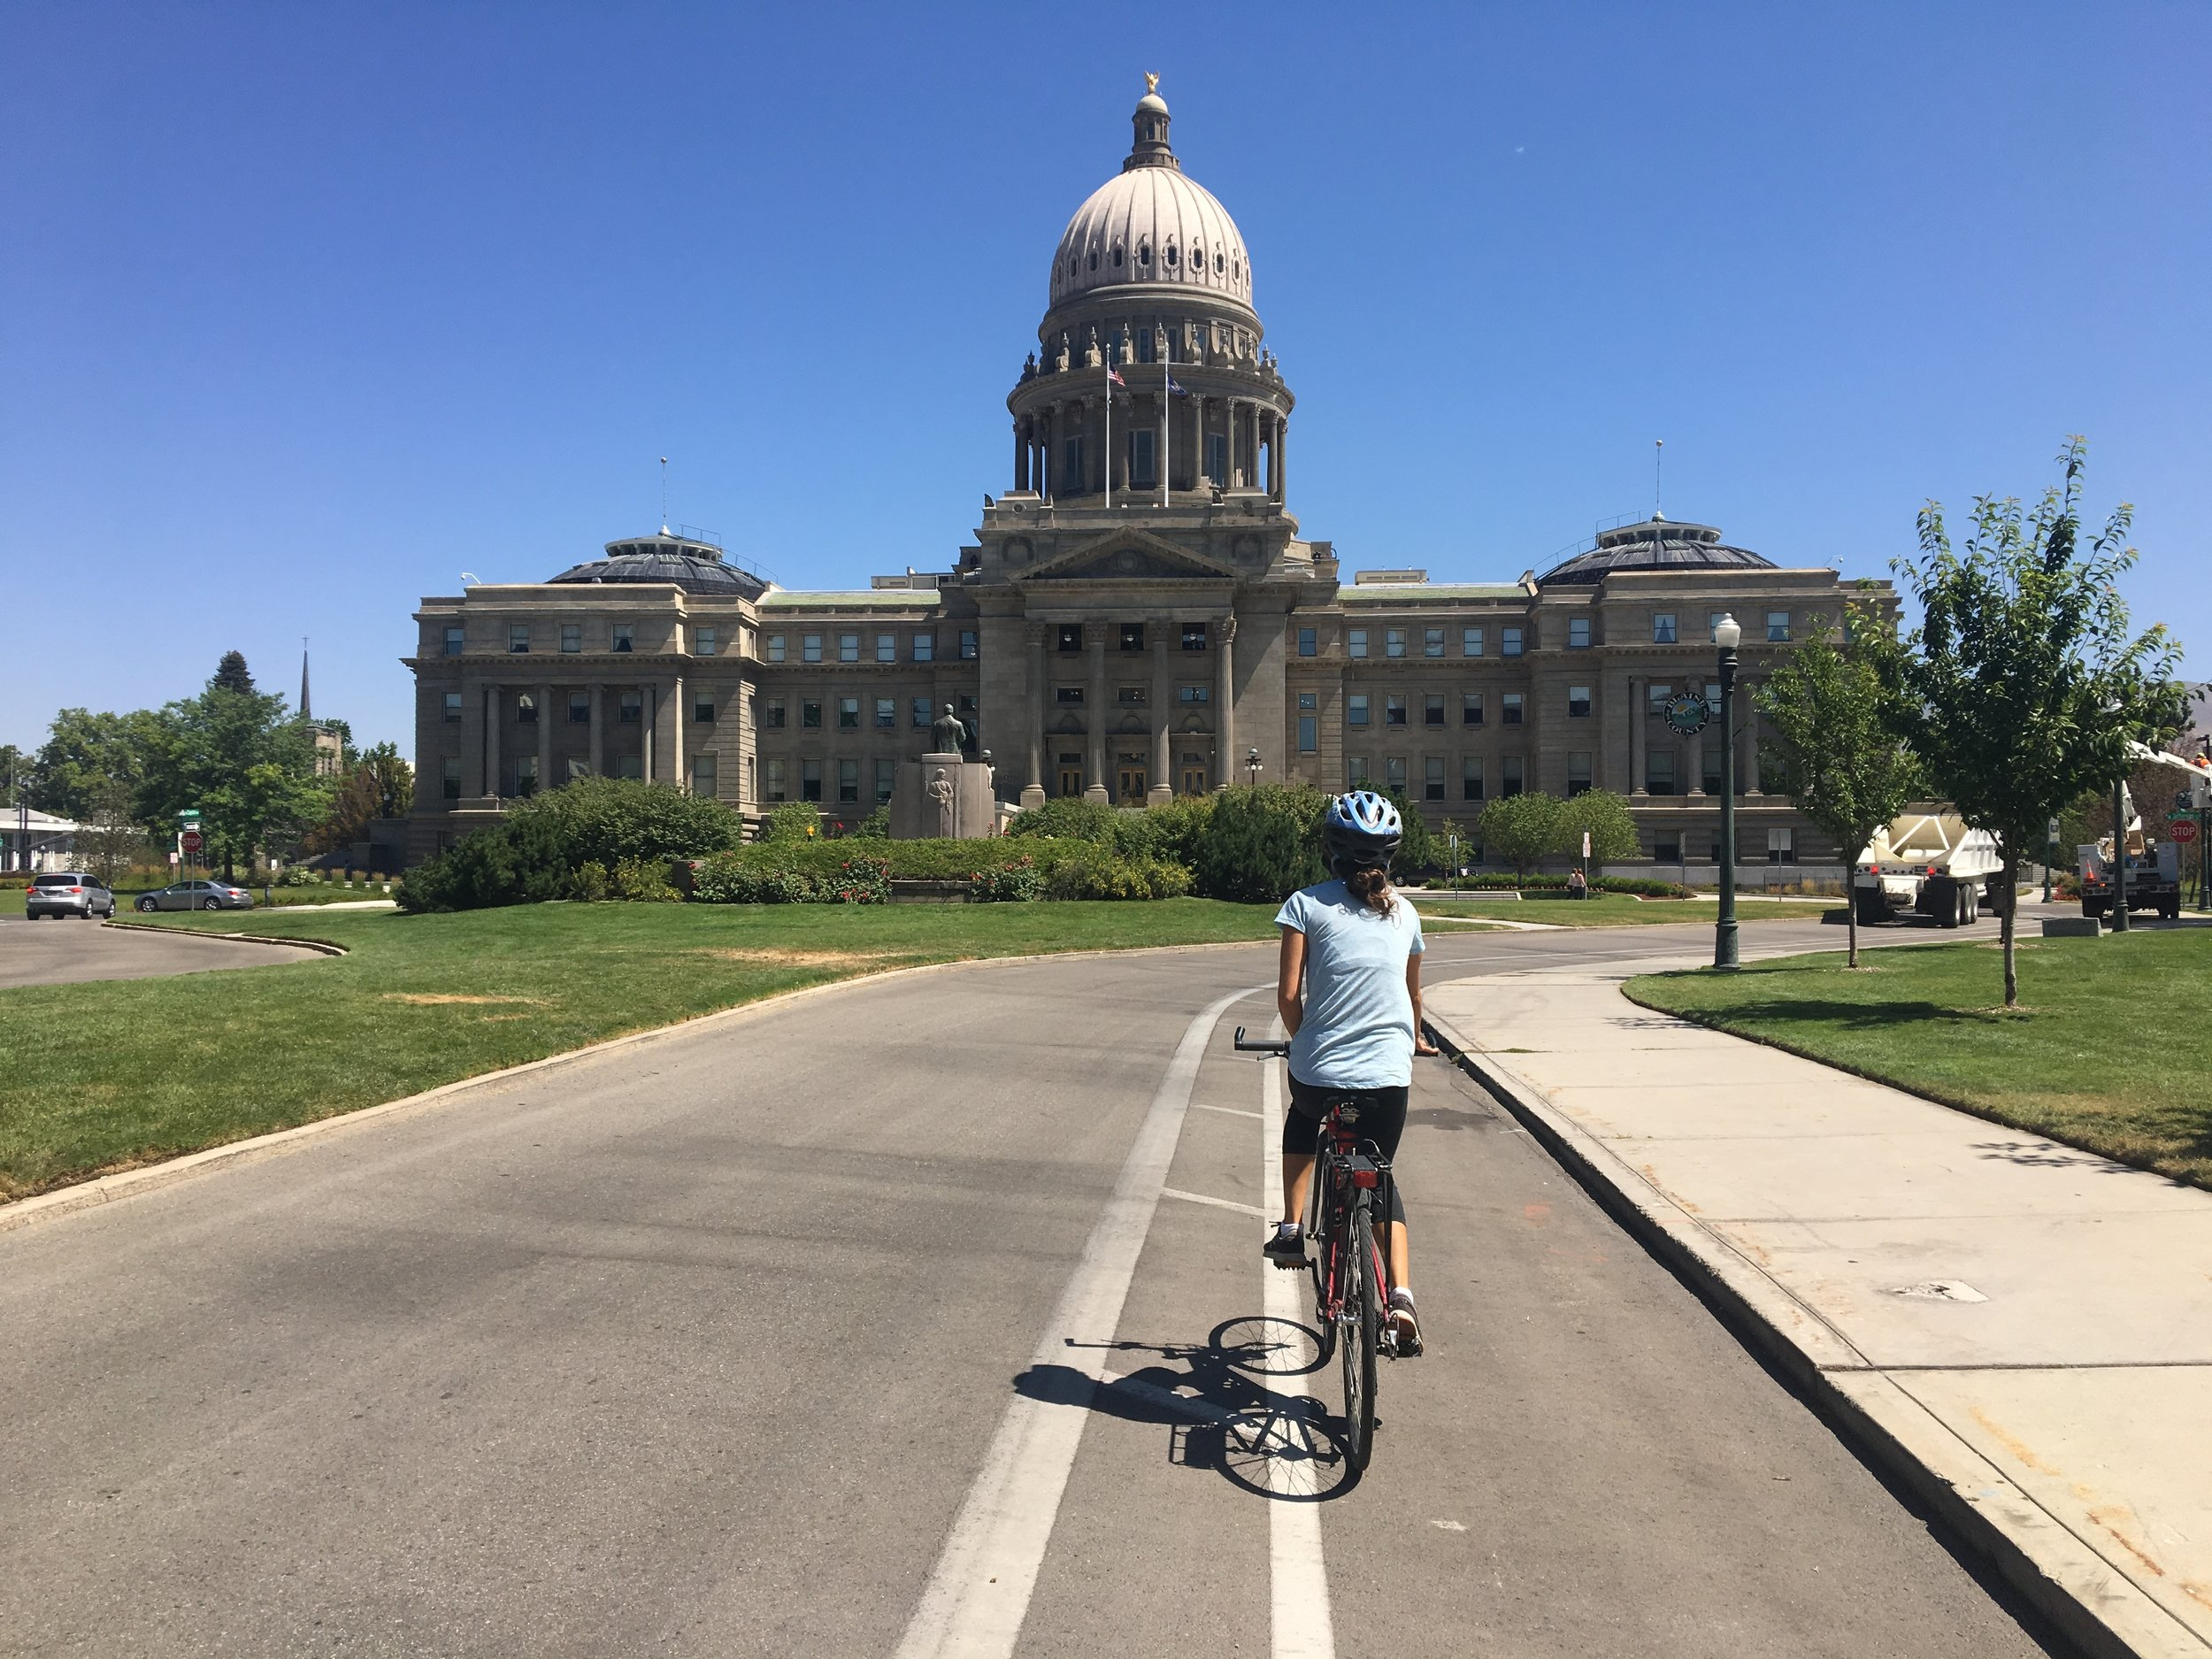 Biking to the Capitol Building